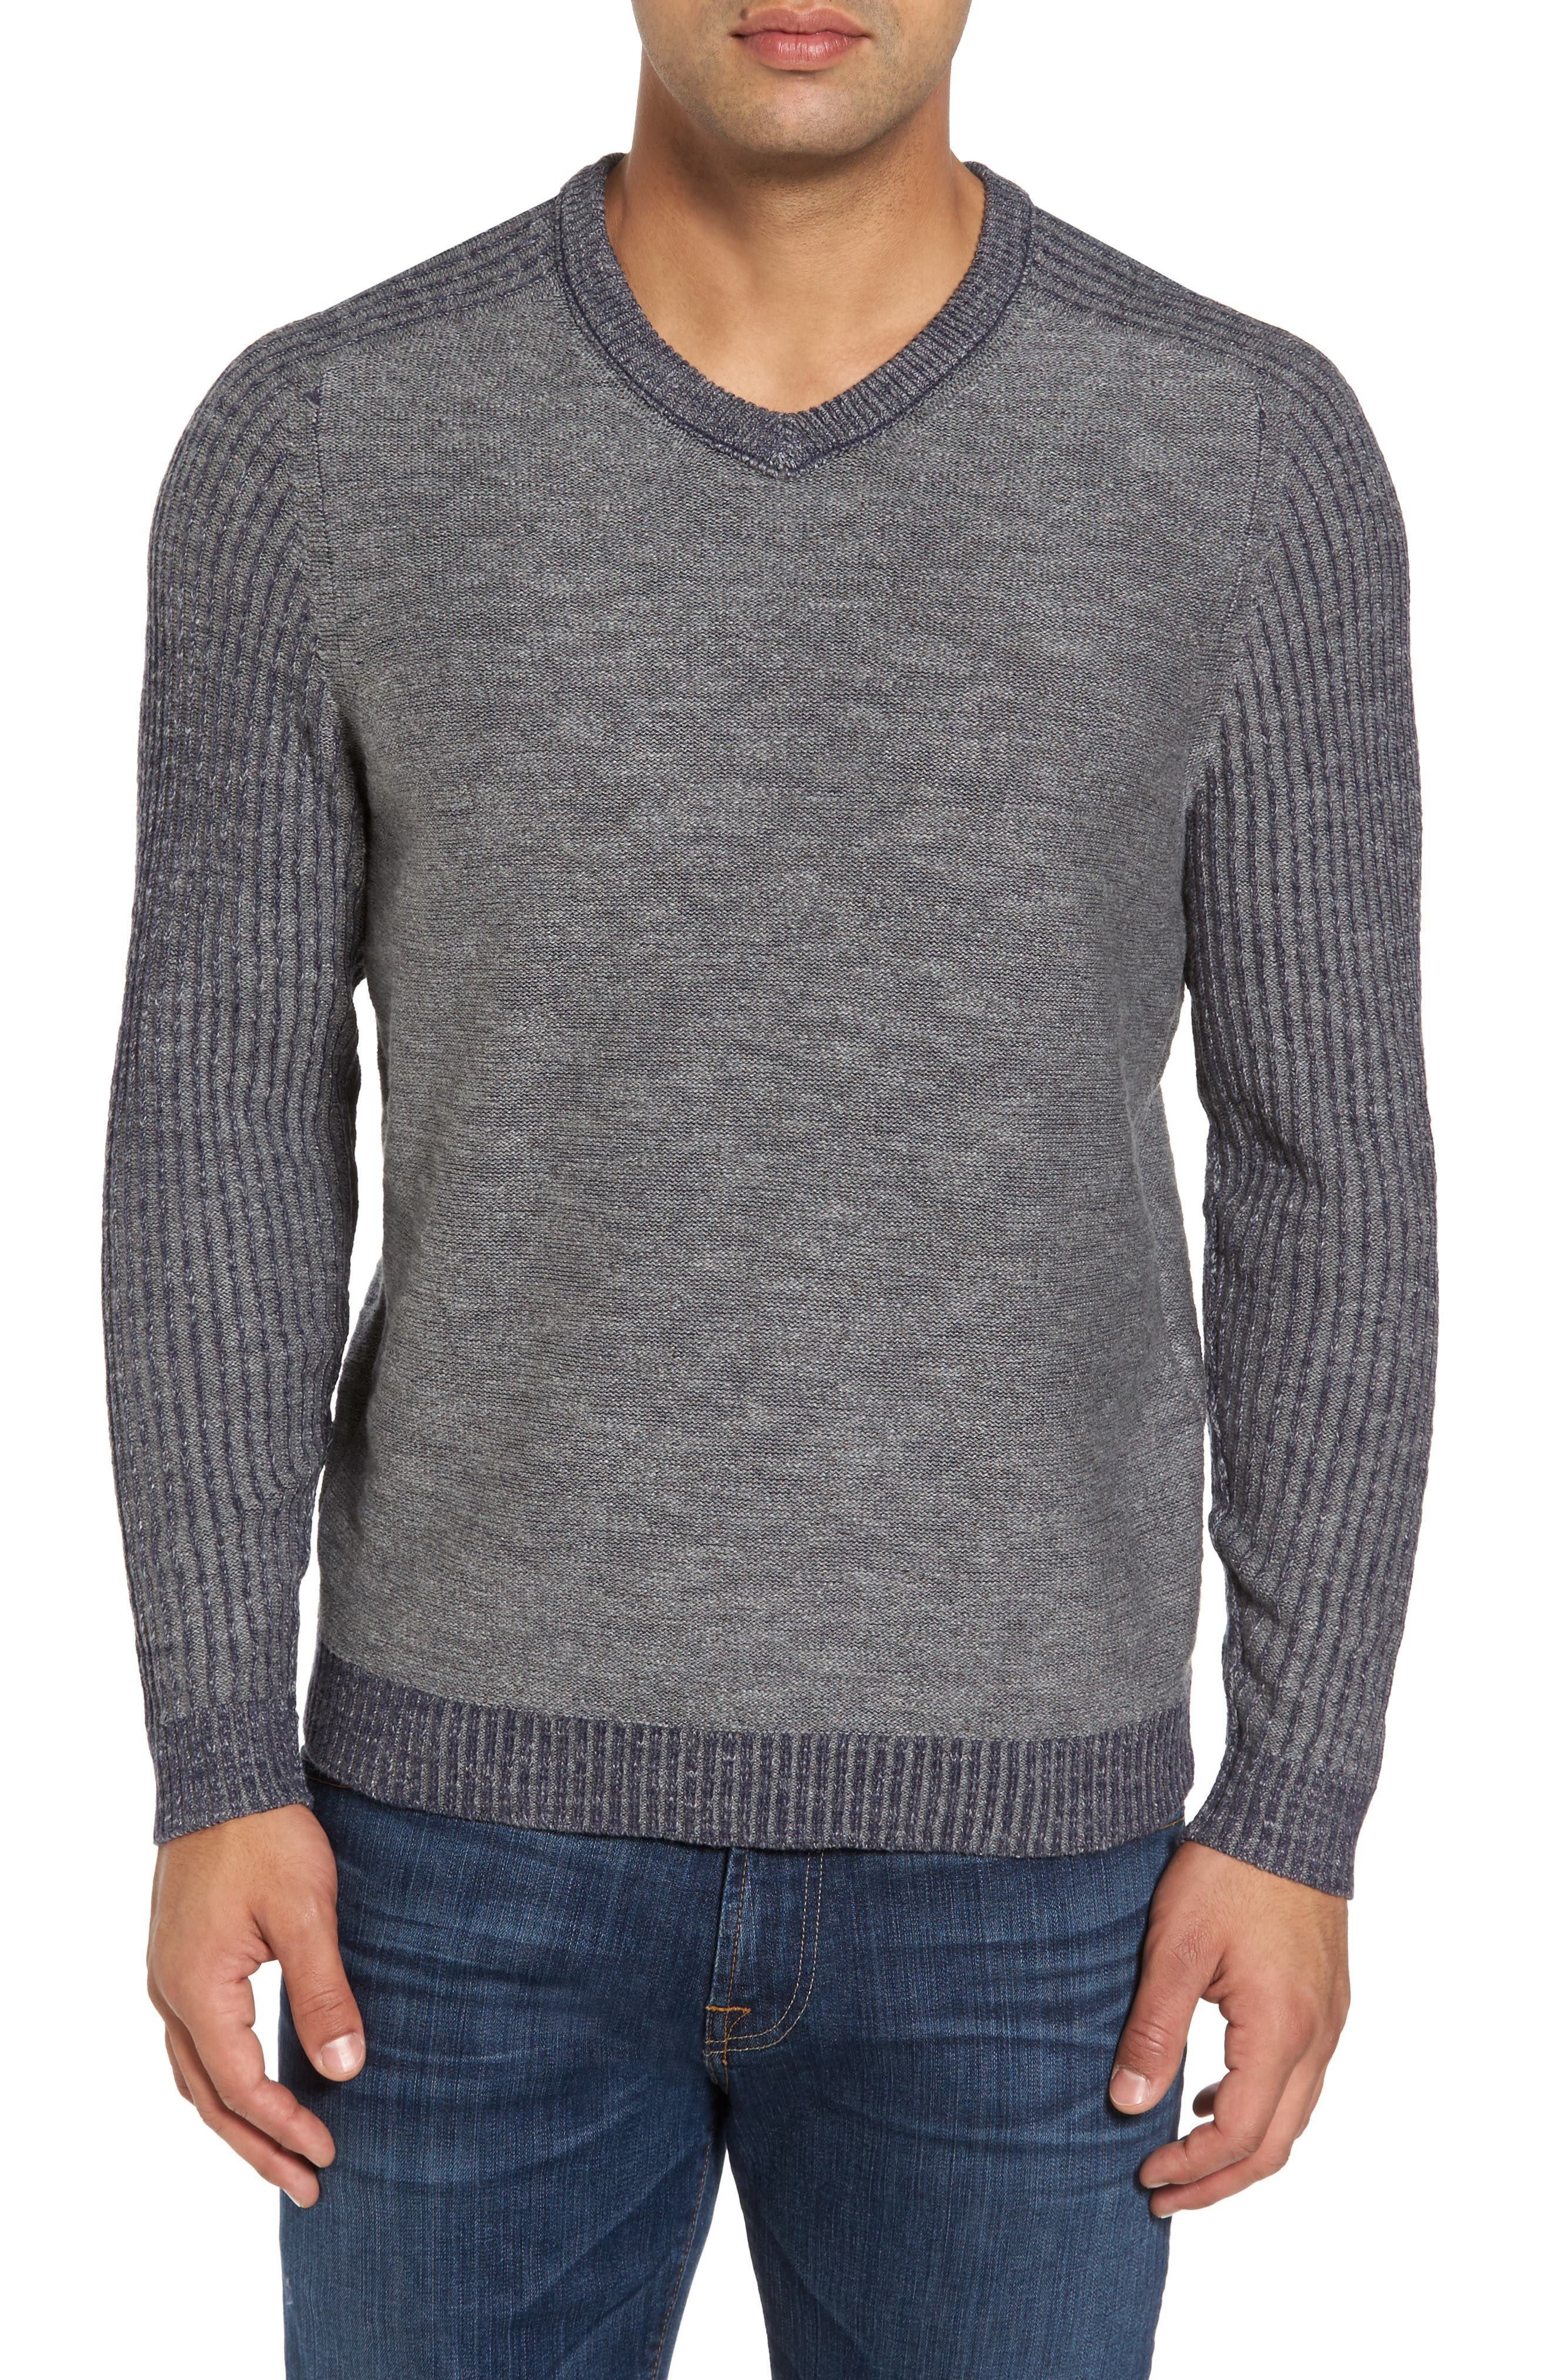 Gran Rey Flip Reversible Cotton & Wool Sweater,                             Alternate thumbnail 7, color,